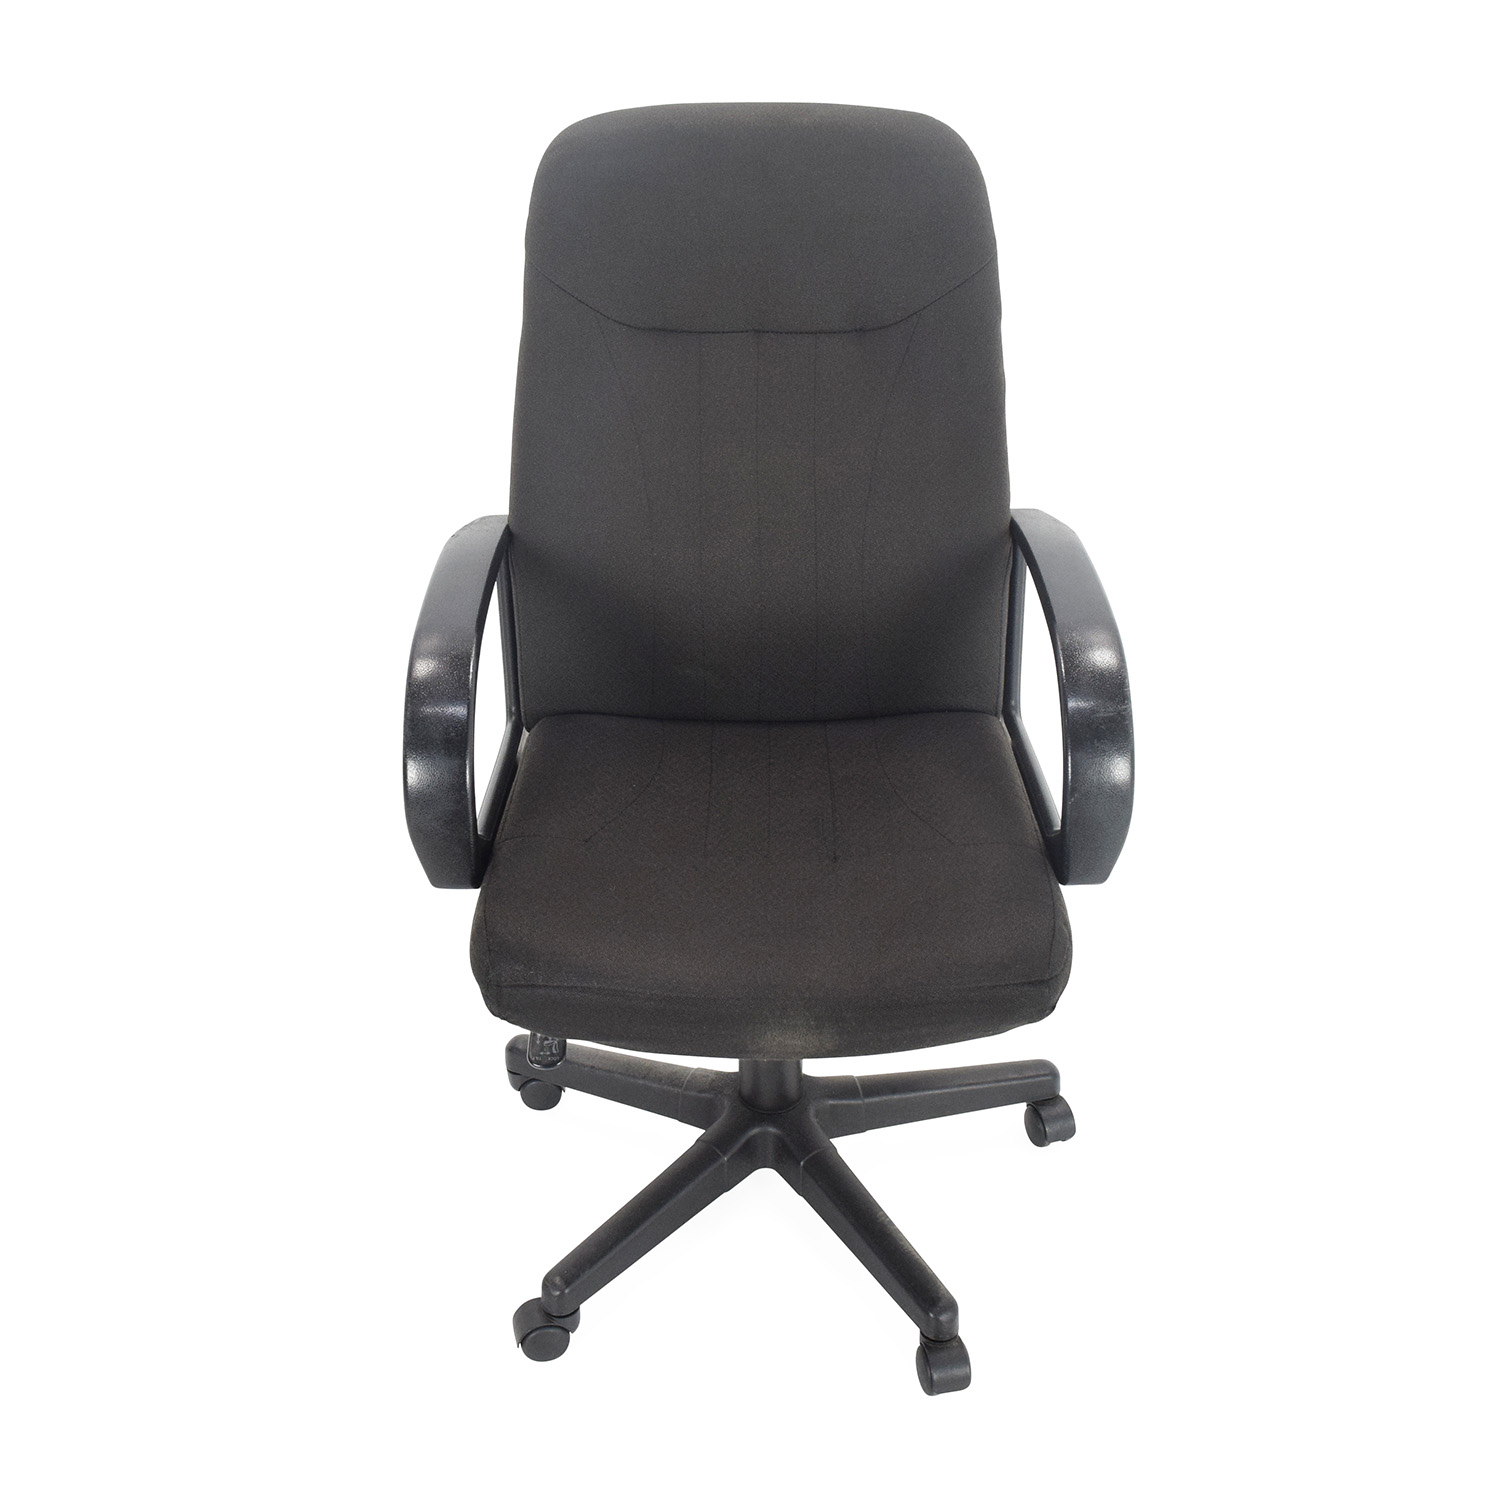 The Comfortable Chair Store Comfy Computer Chair The Top Comfy Desk Chair Home Ideas